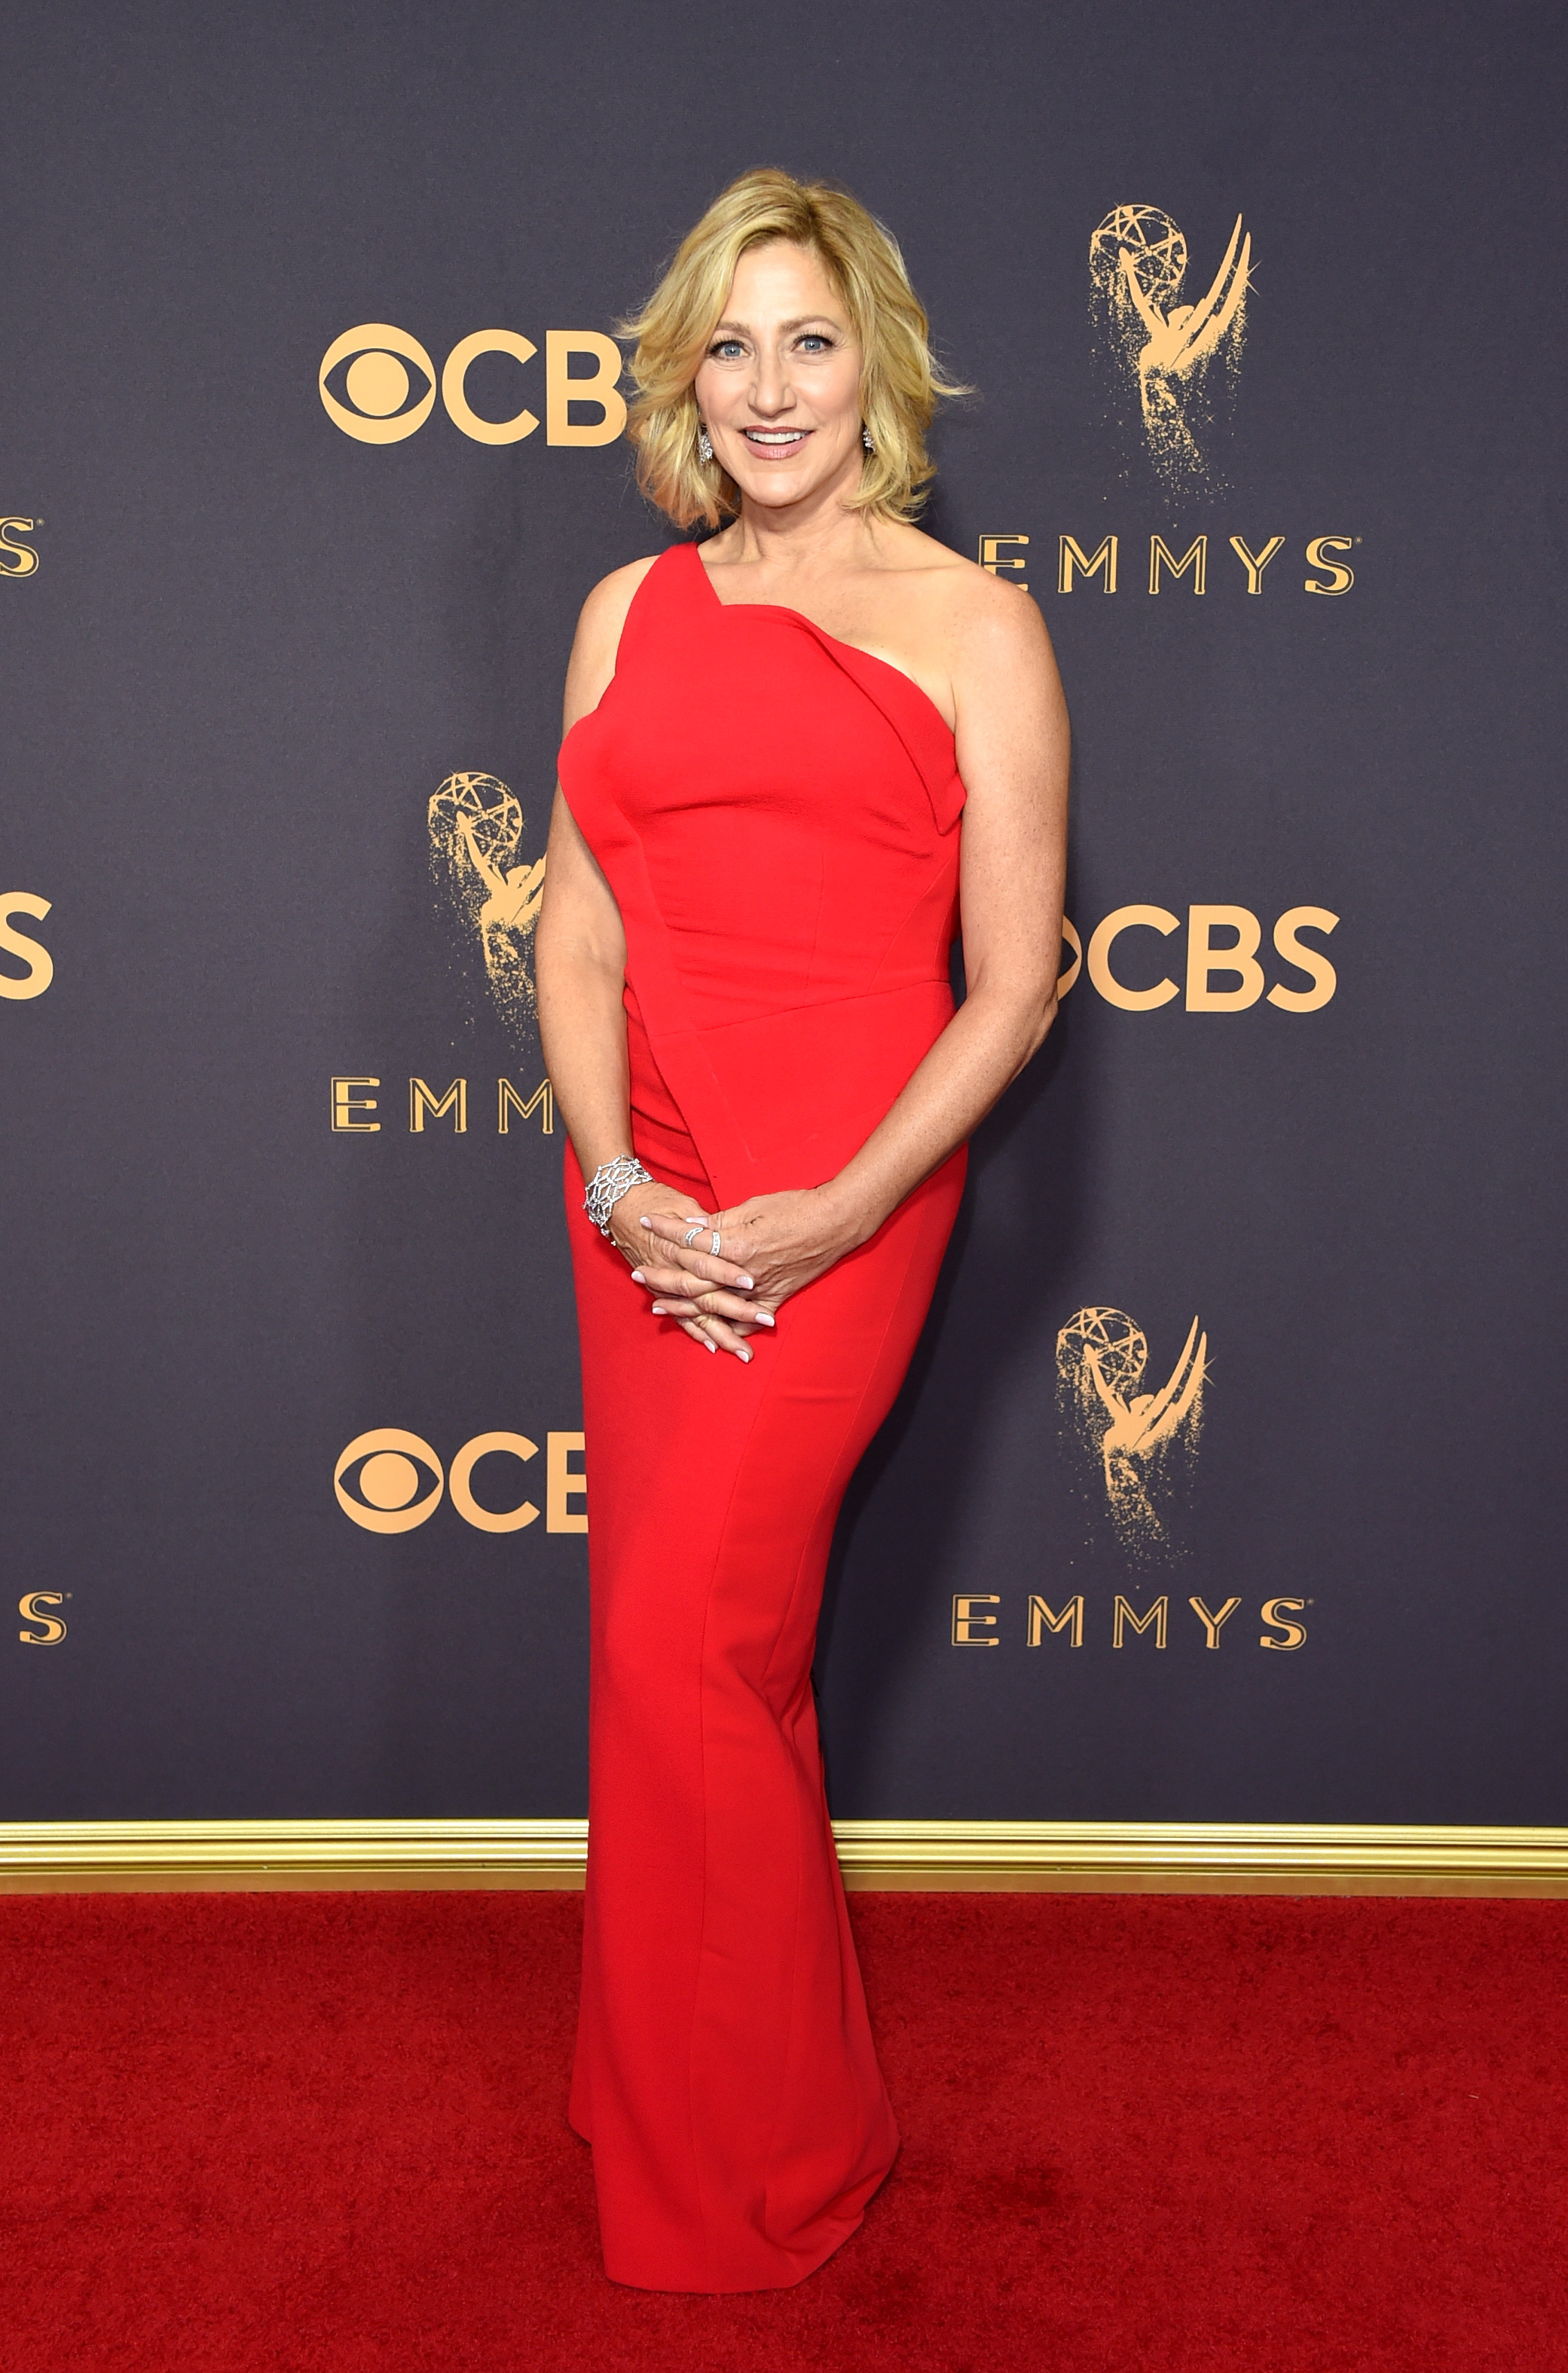 Actor Edie Falco attends the 69th Annual Primetime Emmy Awards at Microsoft Theater on Sept. 17, 2017 in Los Angeles.